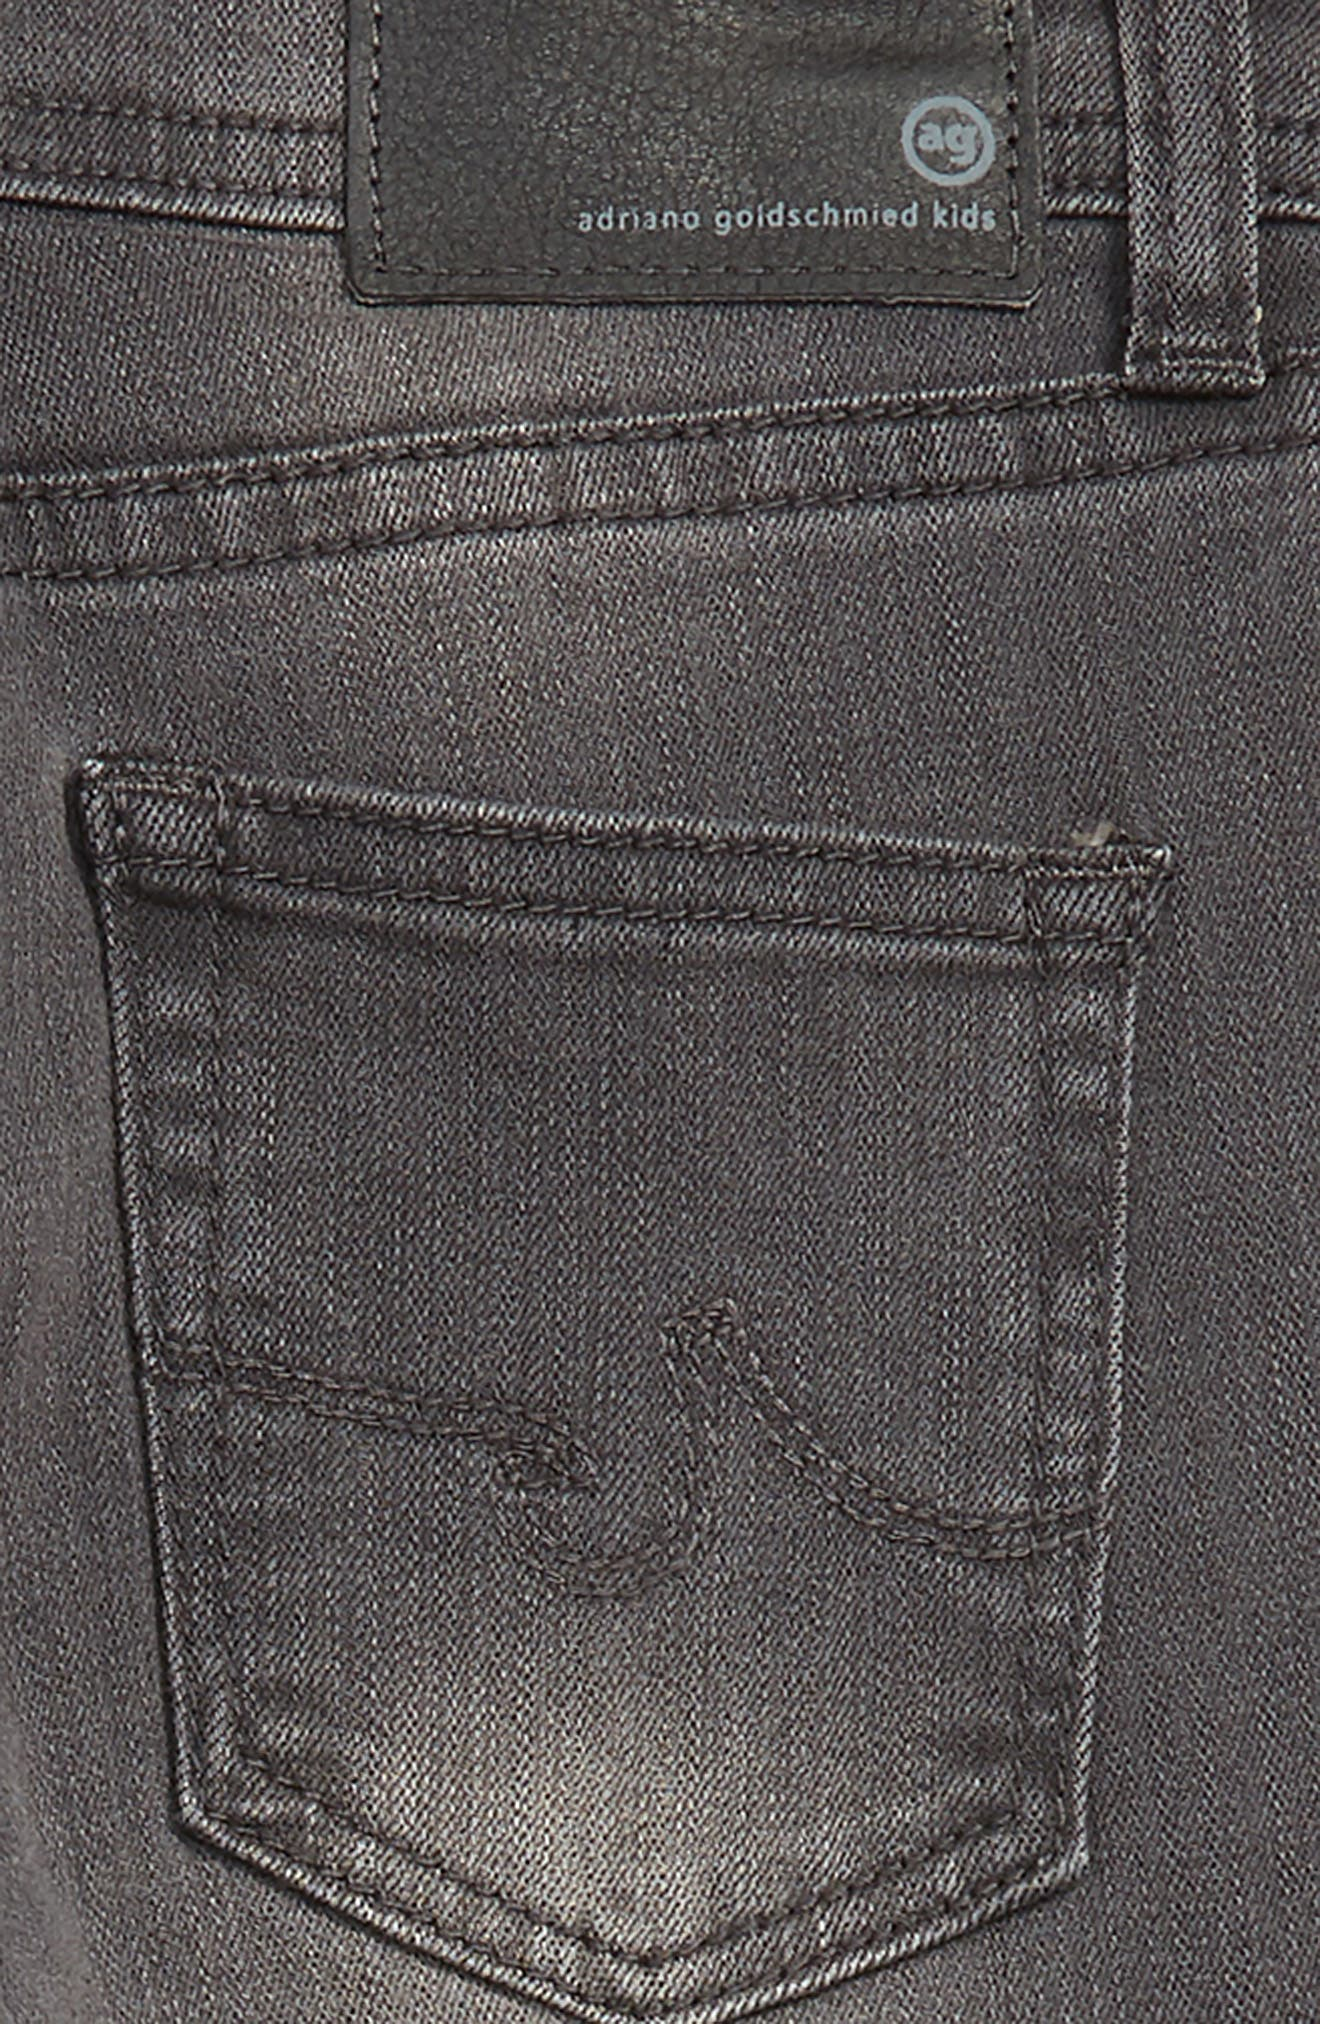 adriano goldschmied kids The Kingston Slim Jeans,                             Alternate thumbnail 3, color,                             FOG GREY